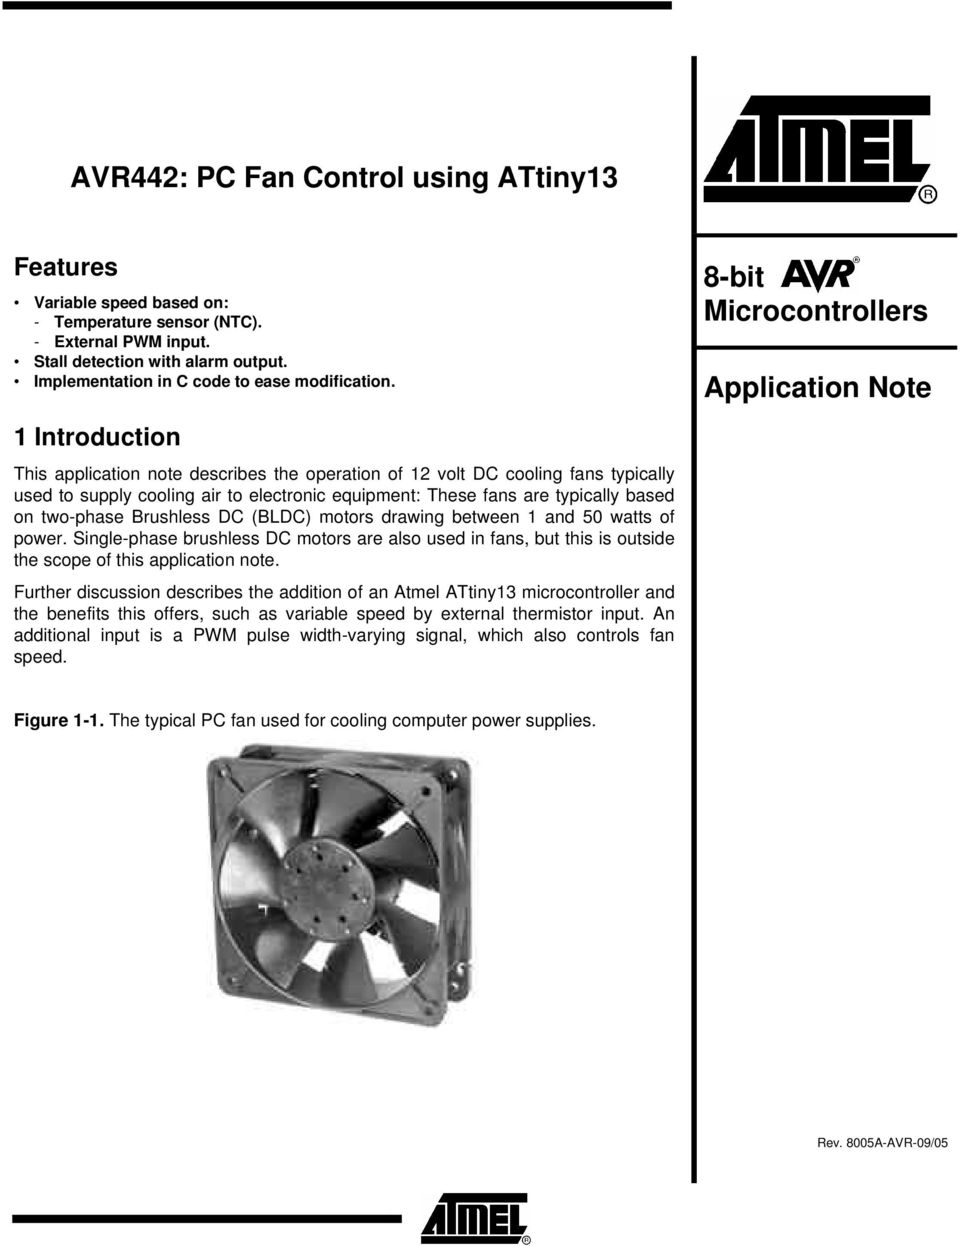 1 Introduction This application note describes the operation of 12 volt DC cooling fans typically used to supply cooling air to electronic equipment: These fans are typically based on two-phase